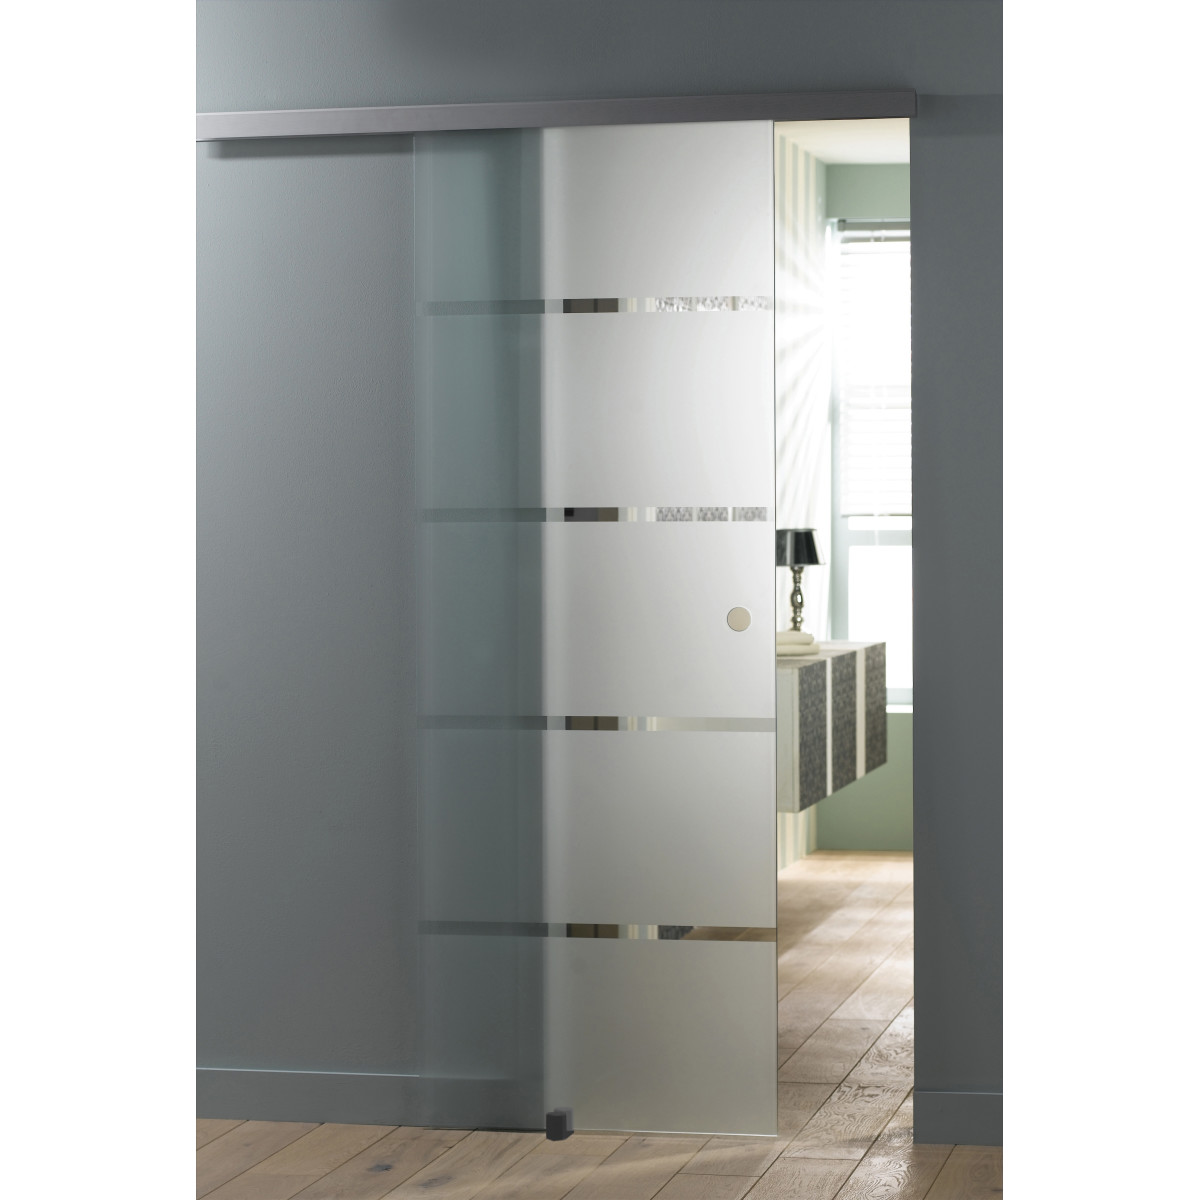 Porte in vetro interne for Porte interno leroy merlin